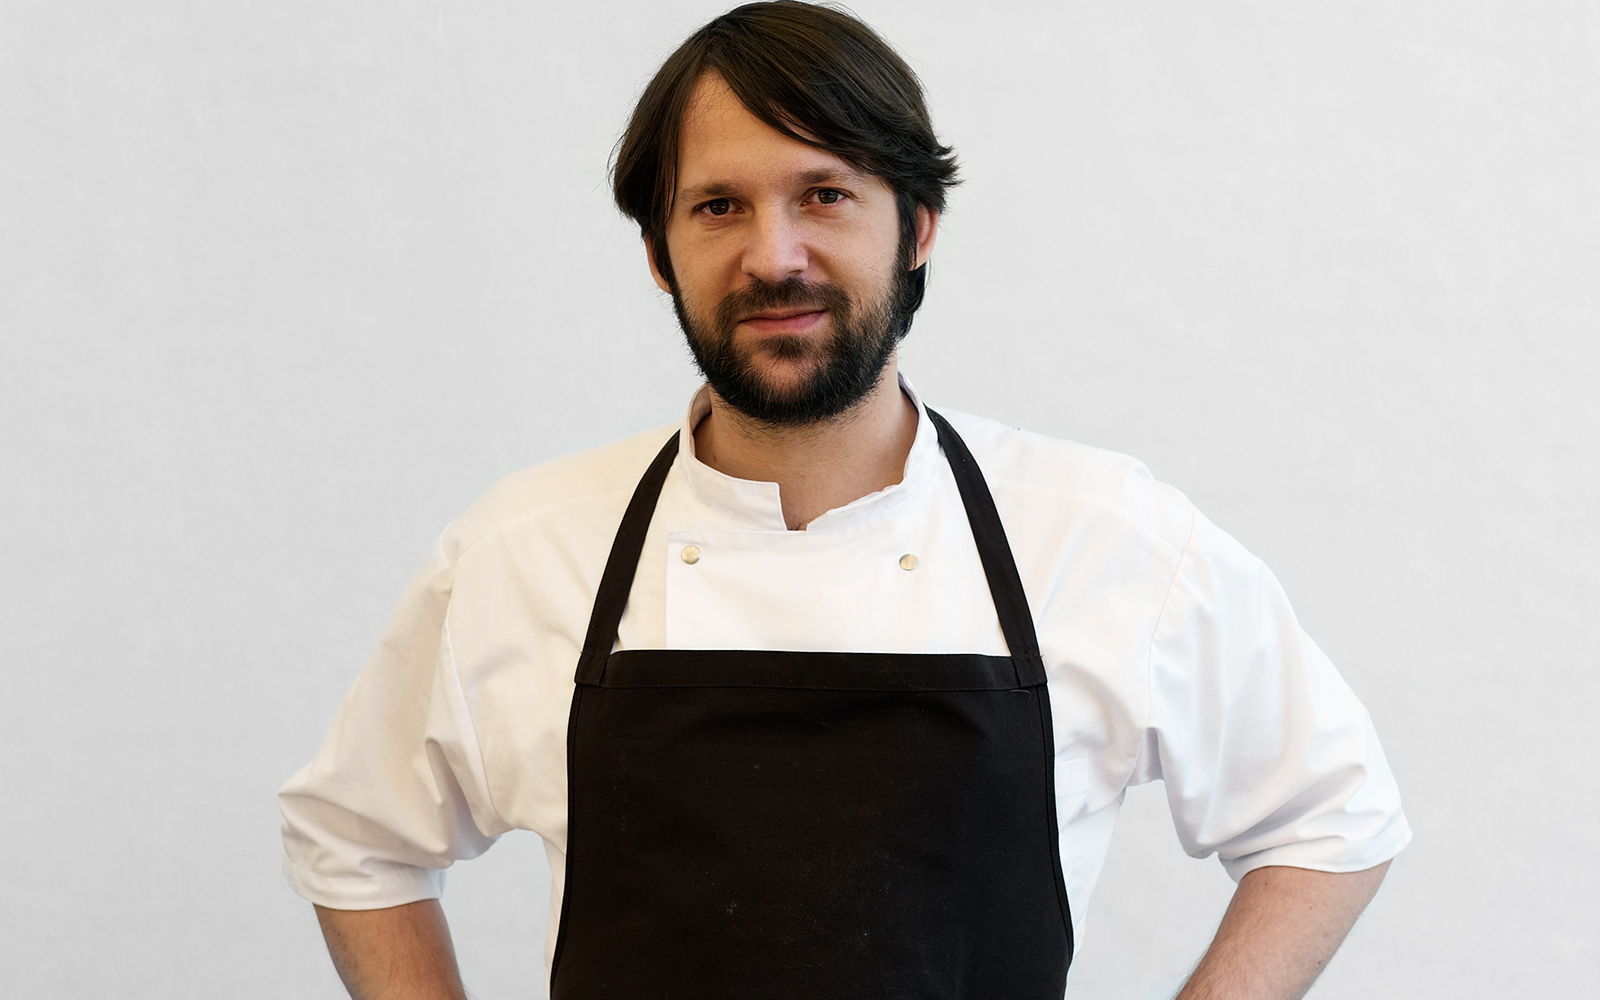 11 Delightfully Candid Quotes From René Redzepi's Reddit AMA